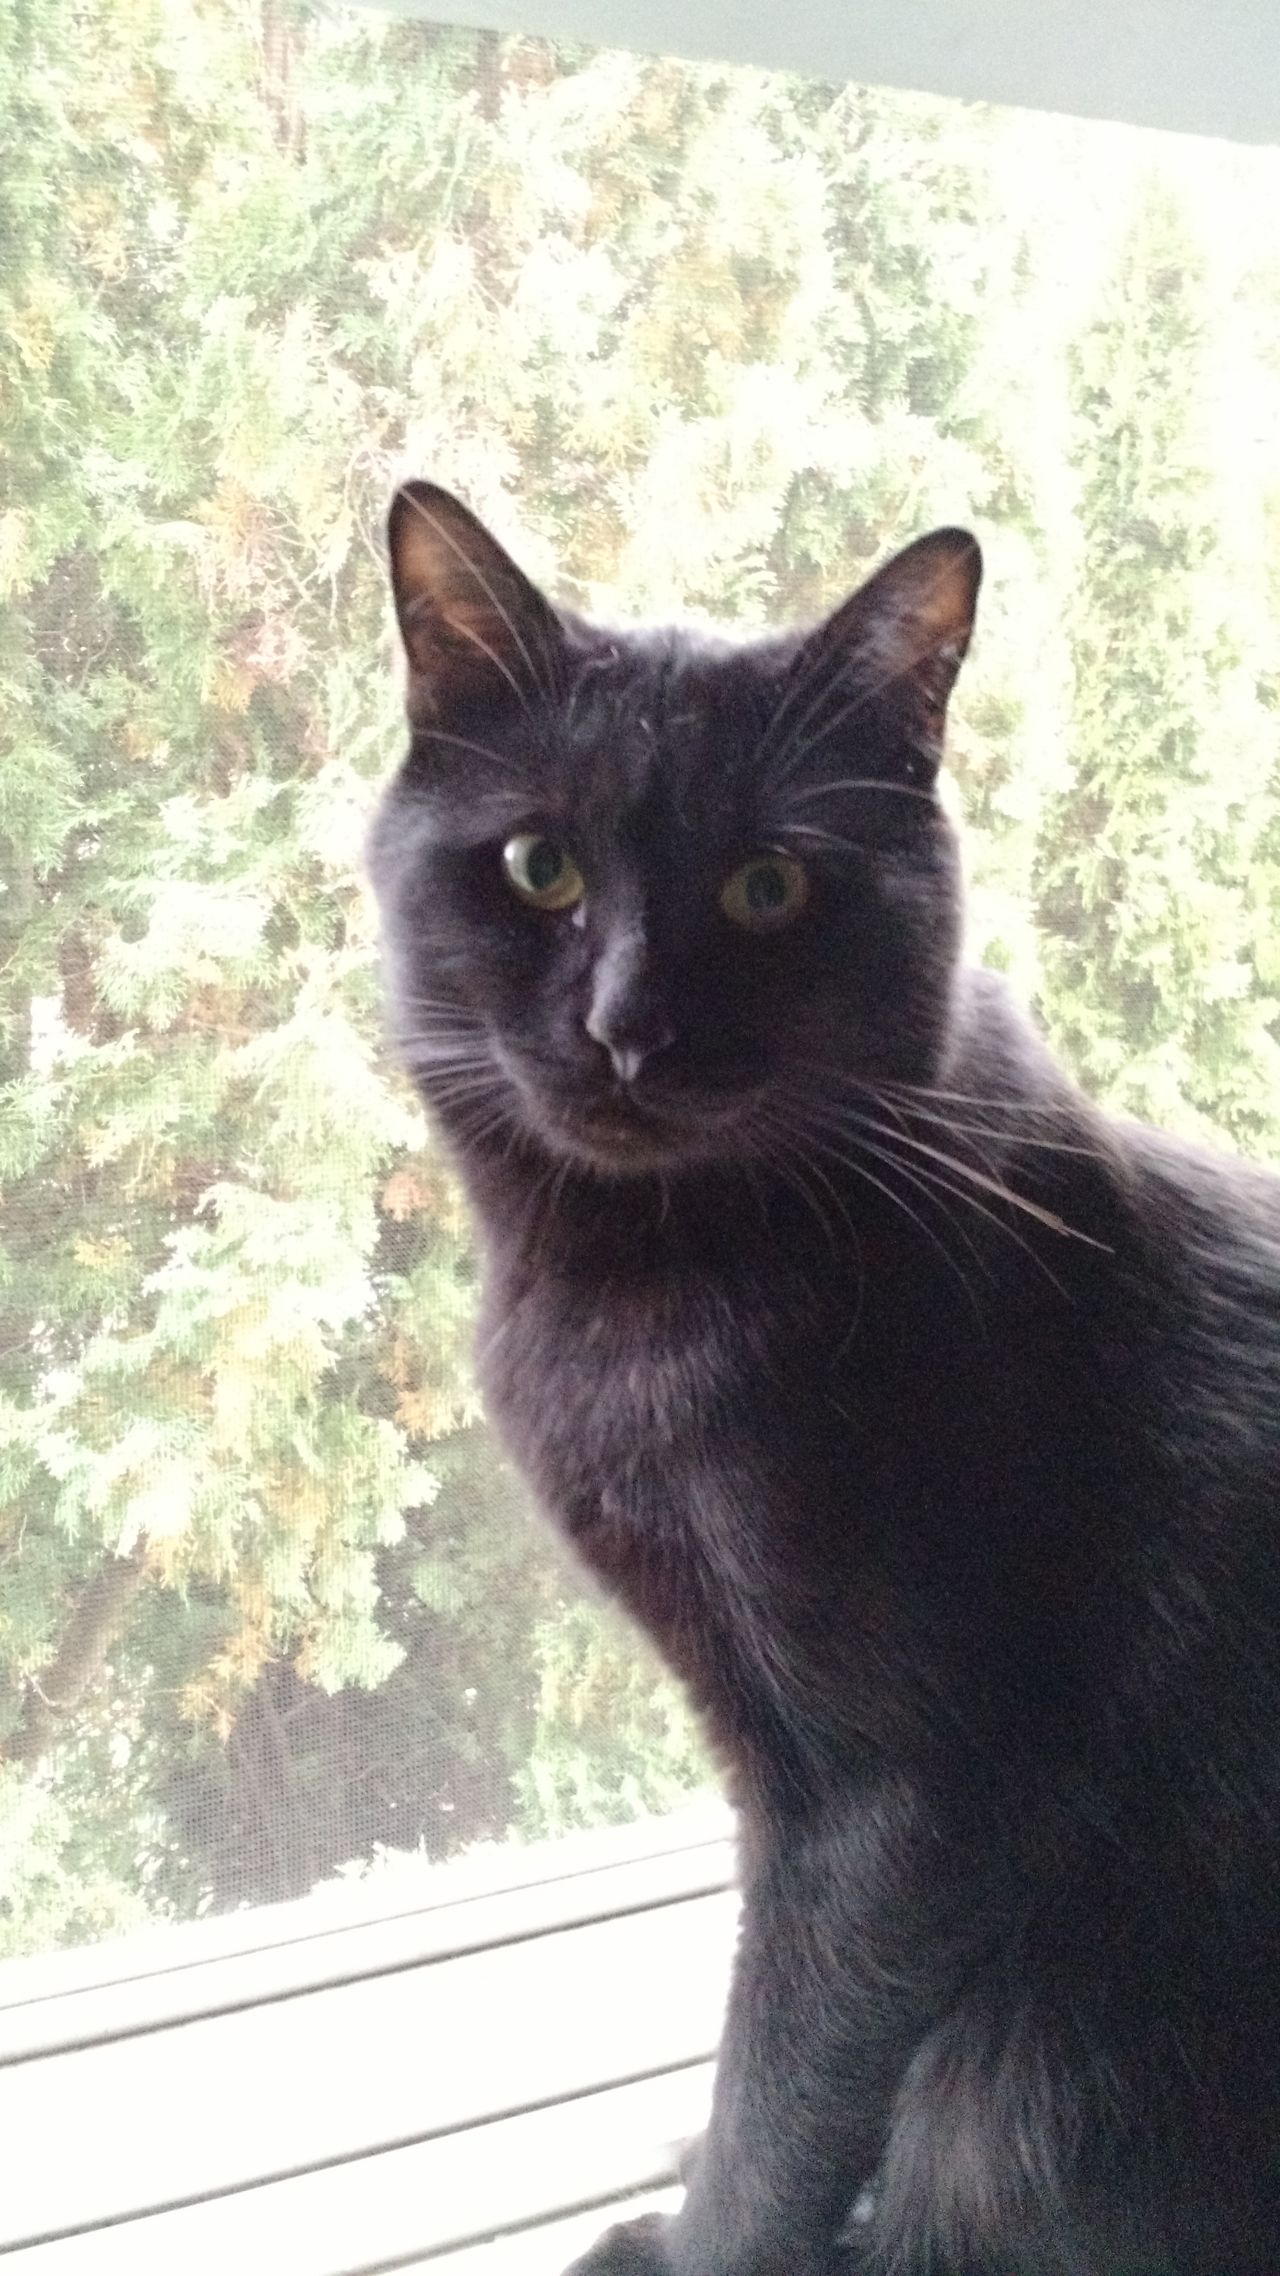 Domestic Animals Domestic Cat Pets Animal Themes Mammal One Animal Looking At Camera Window Portrait Feline Close-up Black Color Day No People Cat Indoors  Siamese Cat Black Cats Are Beautiful